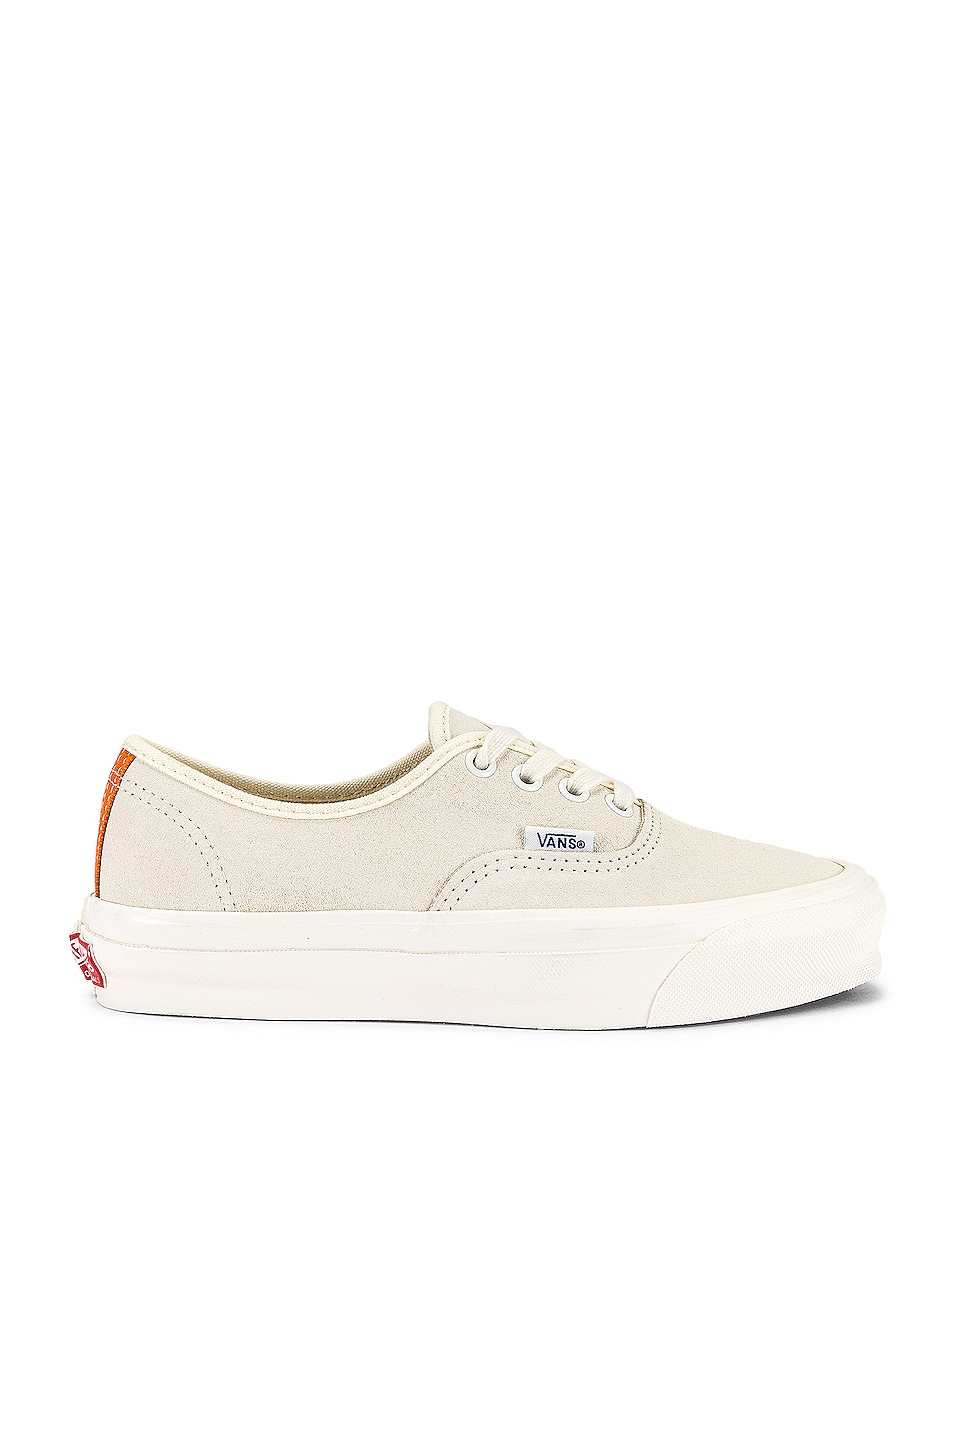 Image 1 of Vans Vault OG Authentic LX in Antique White & Persimmon Orange